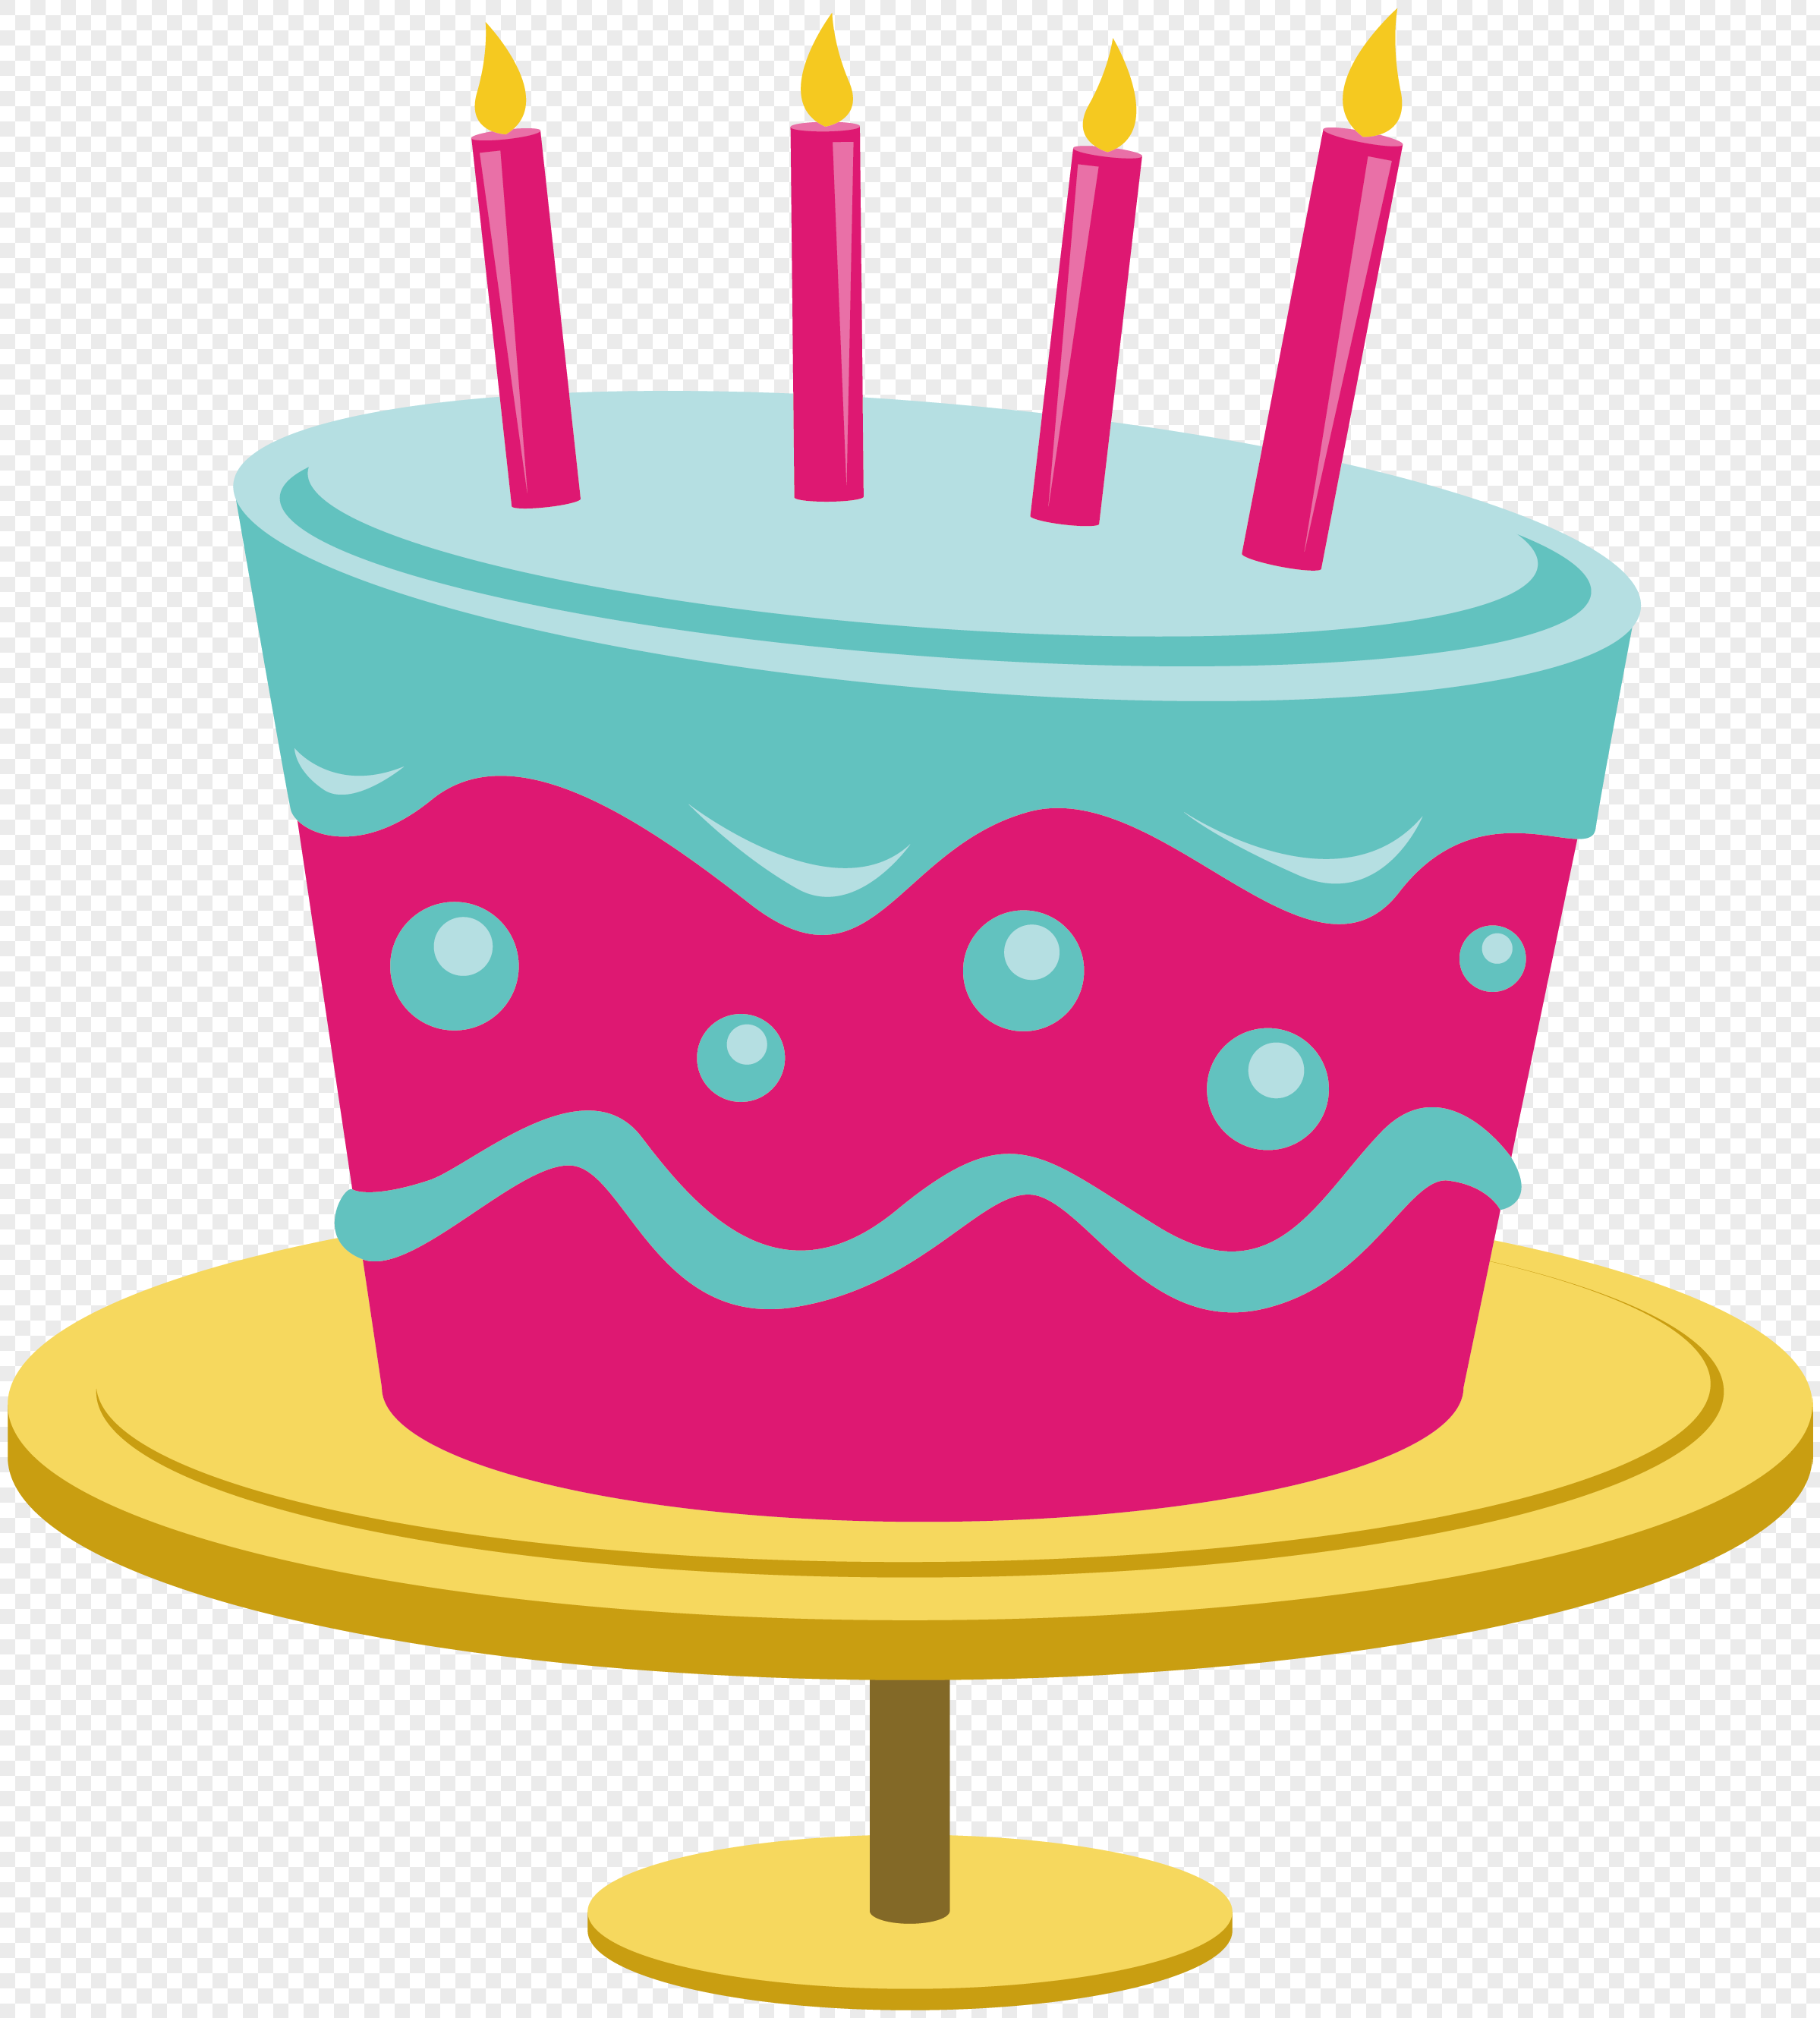 Birthday Cake Vector Free At Getdrawings Com Free For